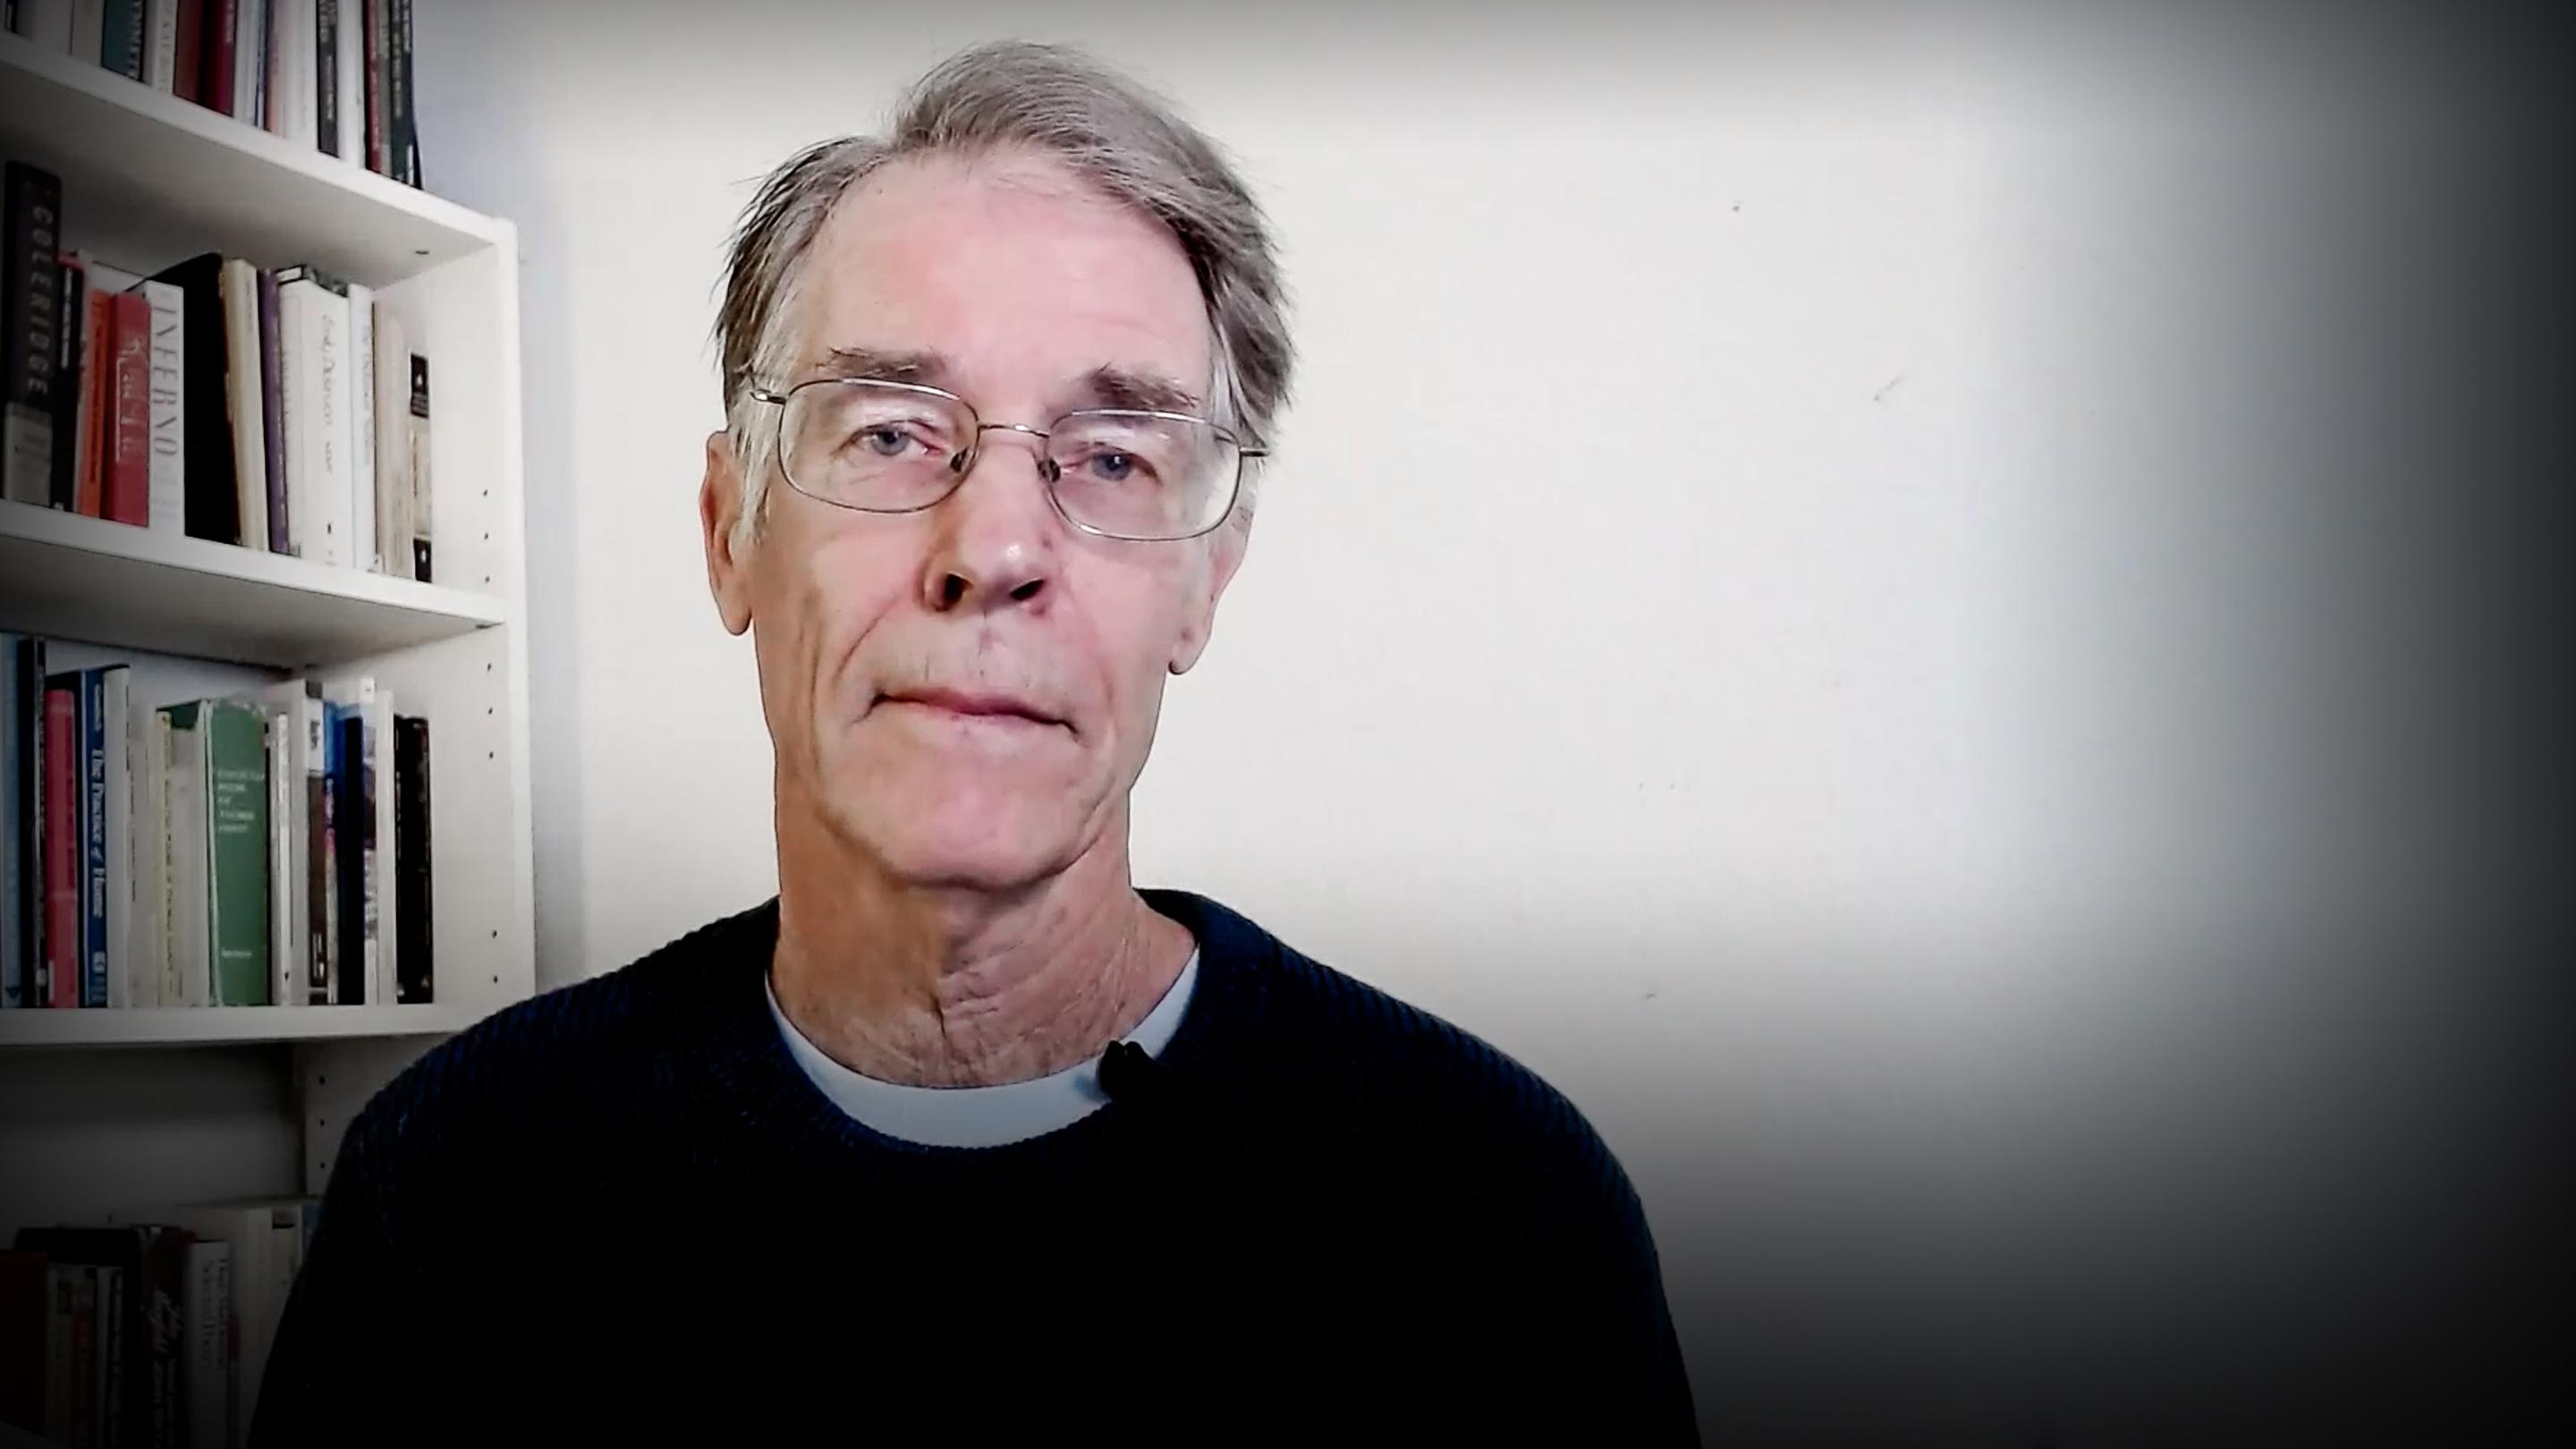 Remembering climate change ... a message from the year 2071 | Kim Stanley Robinson